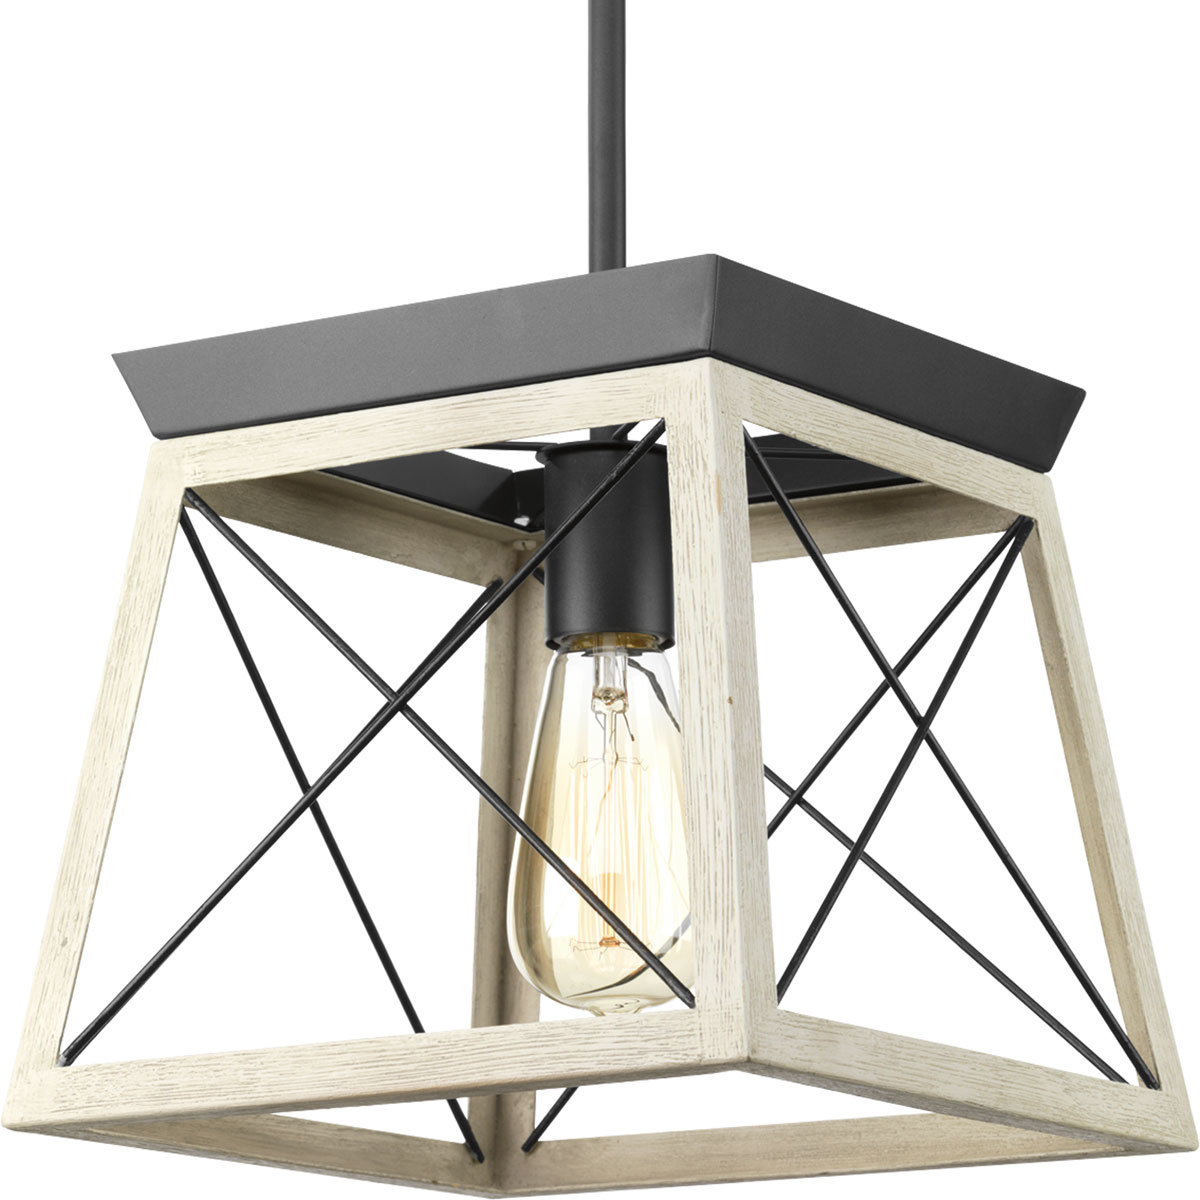 Delon 1 Light Lantern Pendant Intended For Trendy Delon 1 Light Lantern Geometric Pendants (Gallery 5 of 20)